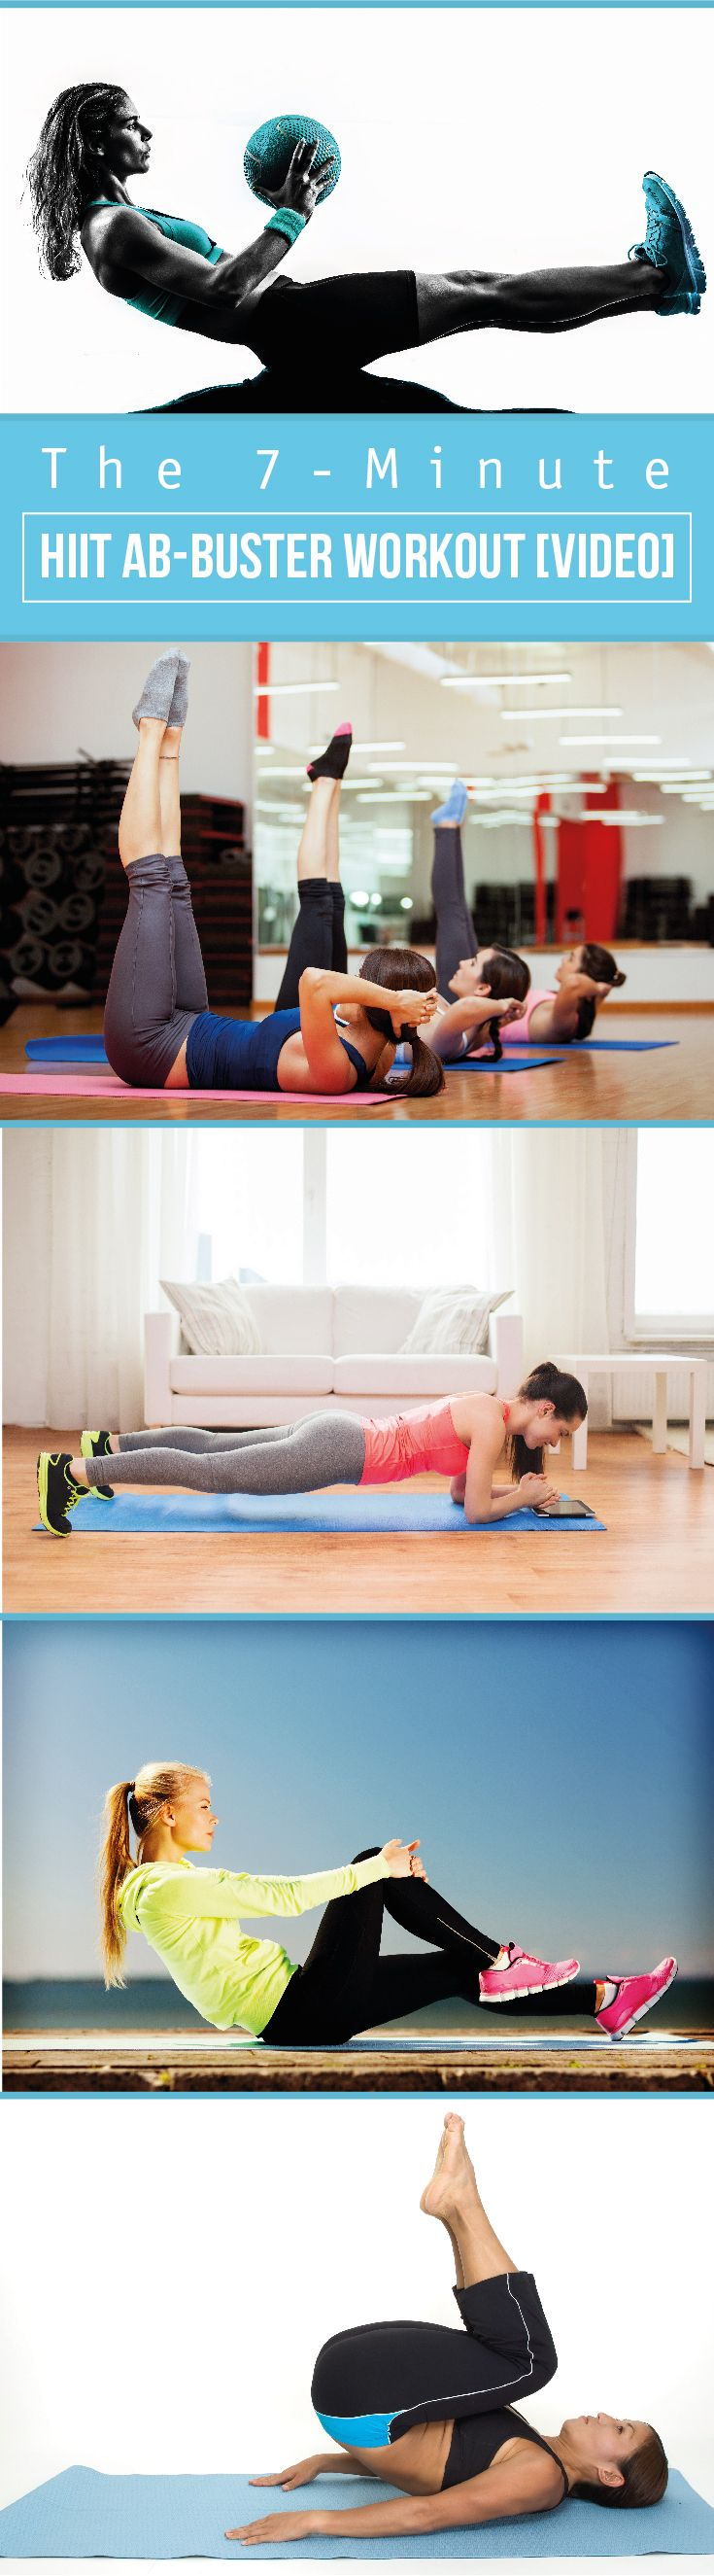 Getting toned and flat abs is now possible in just 7 minutes! Pace and Go's unique combination of exercises combines dynamic movements with isometric holds to maximise their effectiveness. #workout #exercise #fitness #muscle